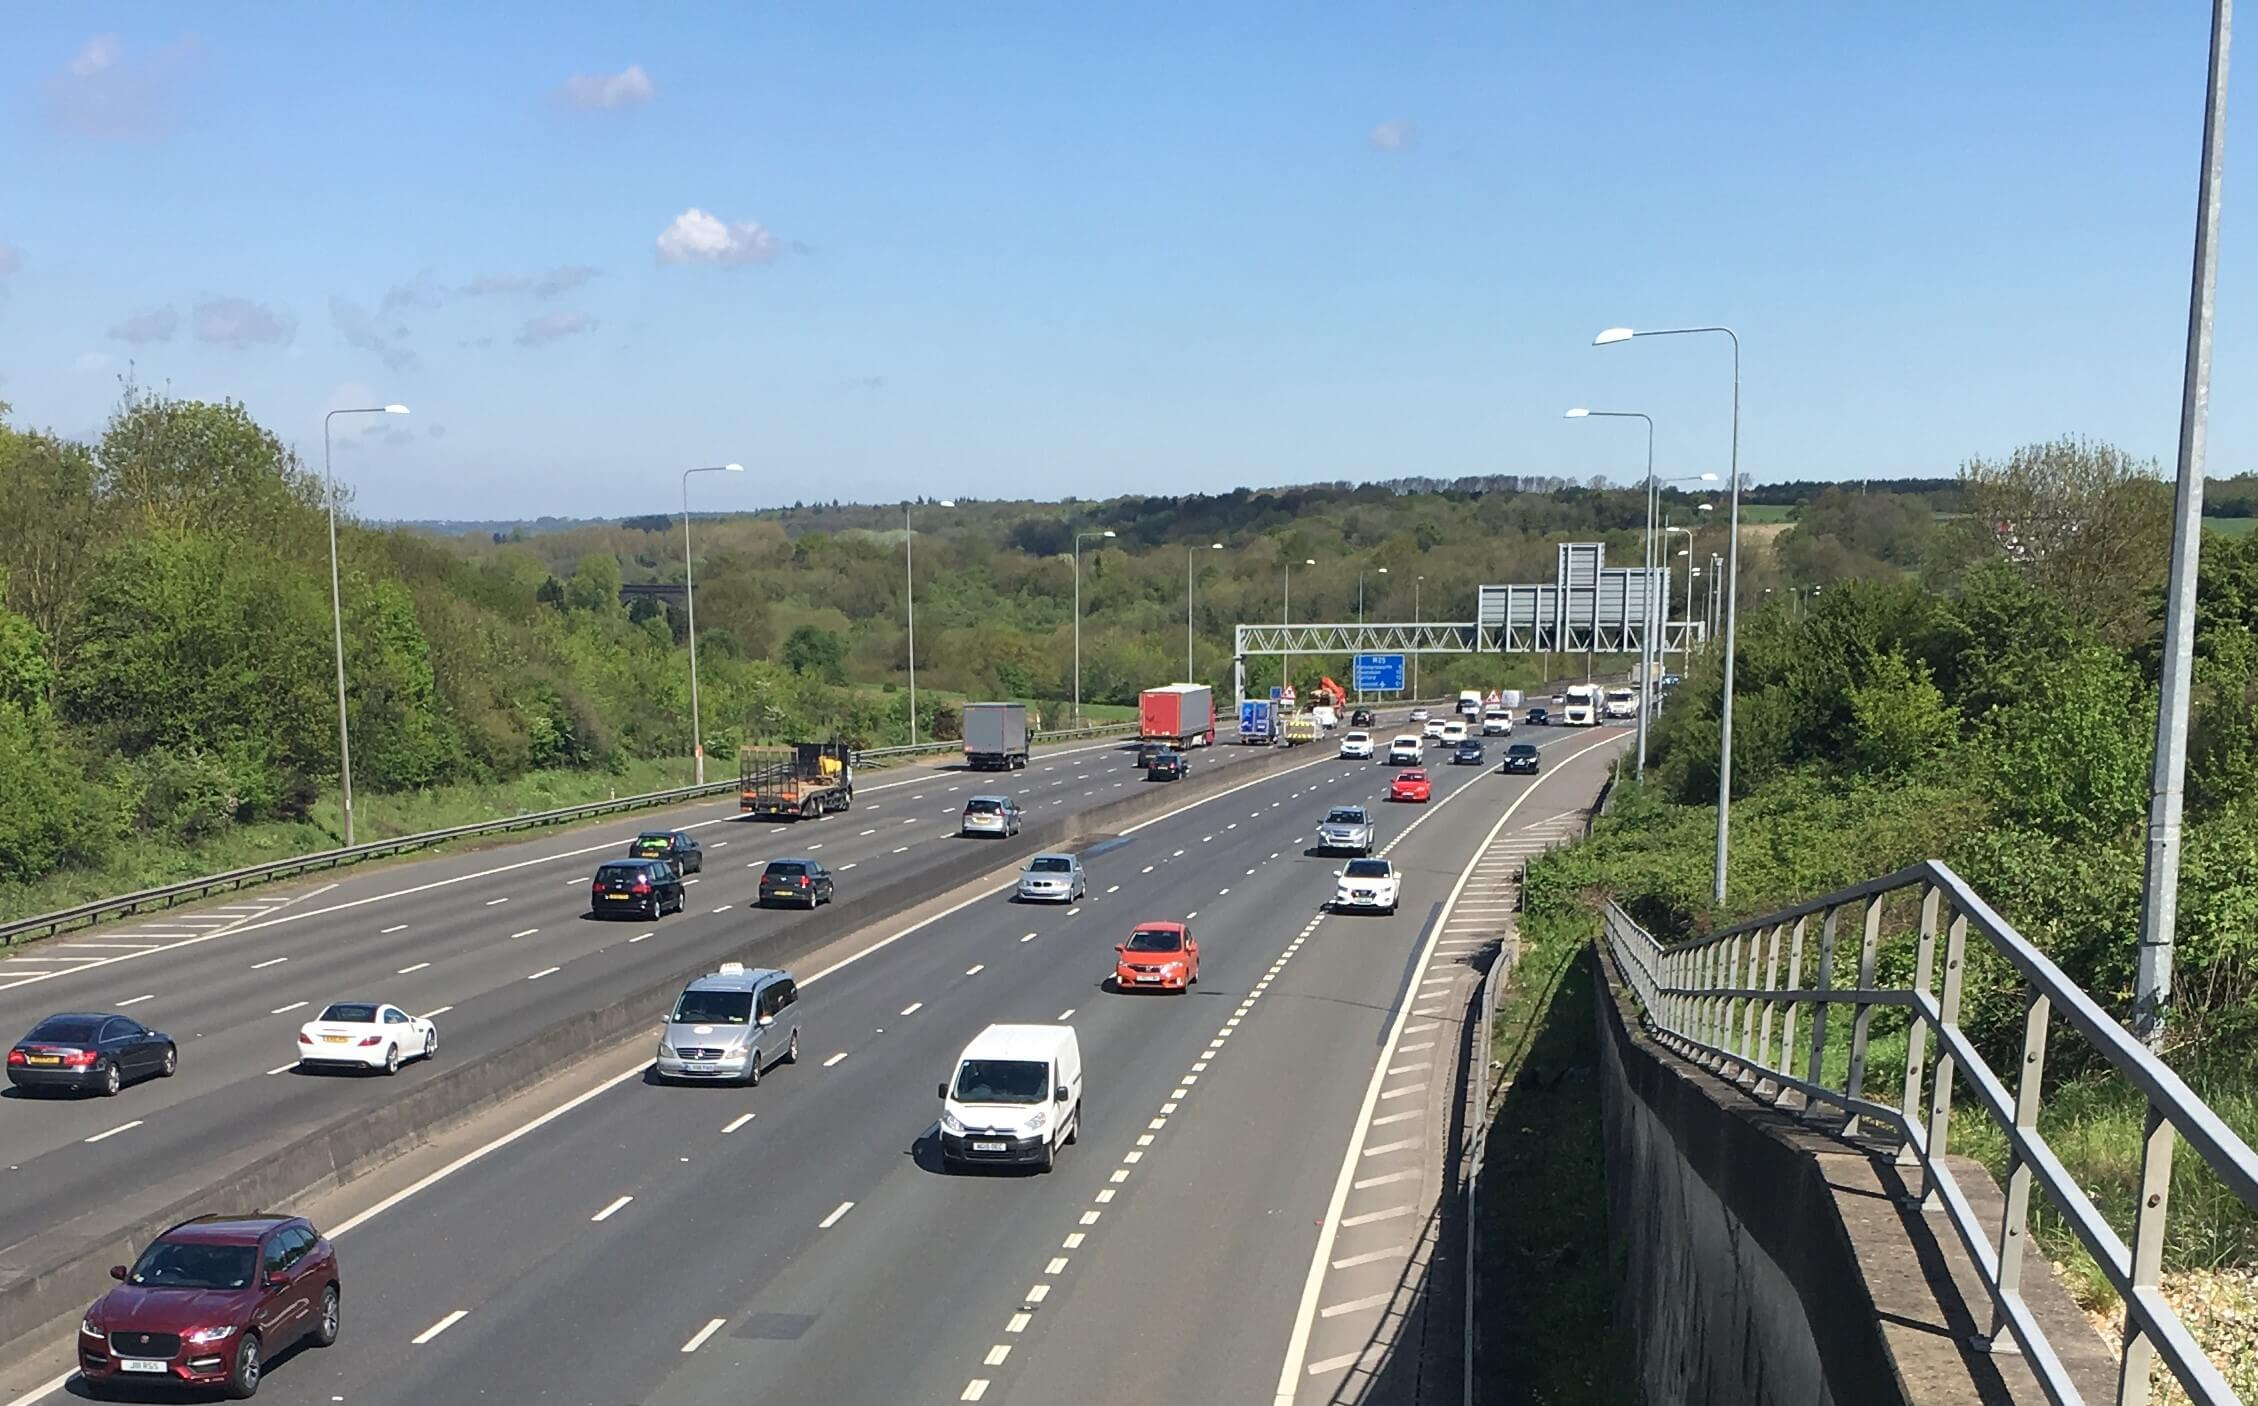 Traffic on the M25 during a survey for a noise impact assessment